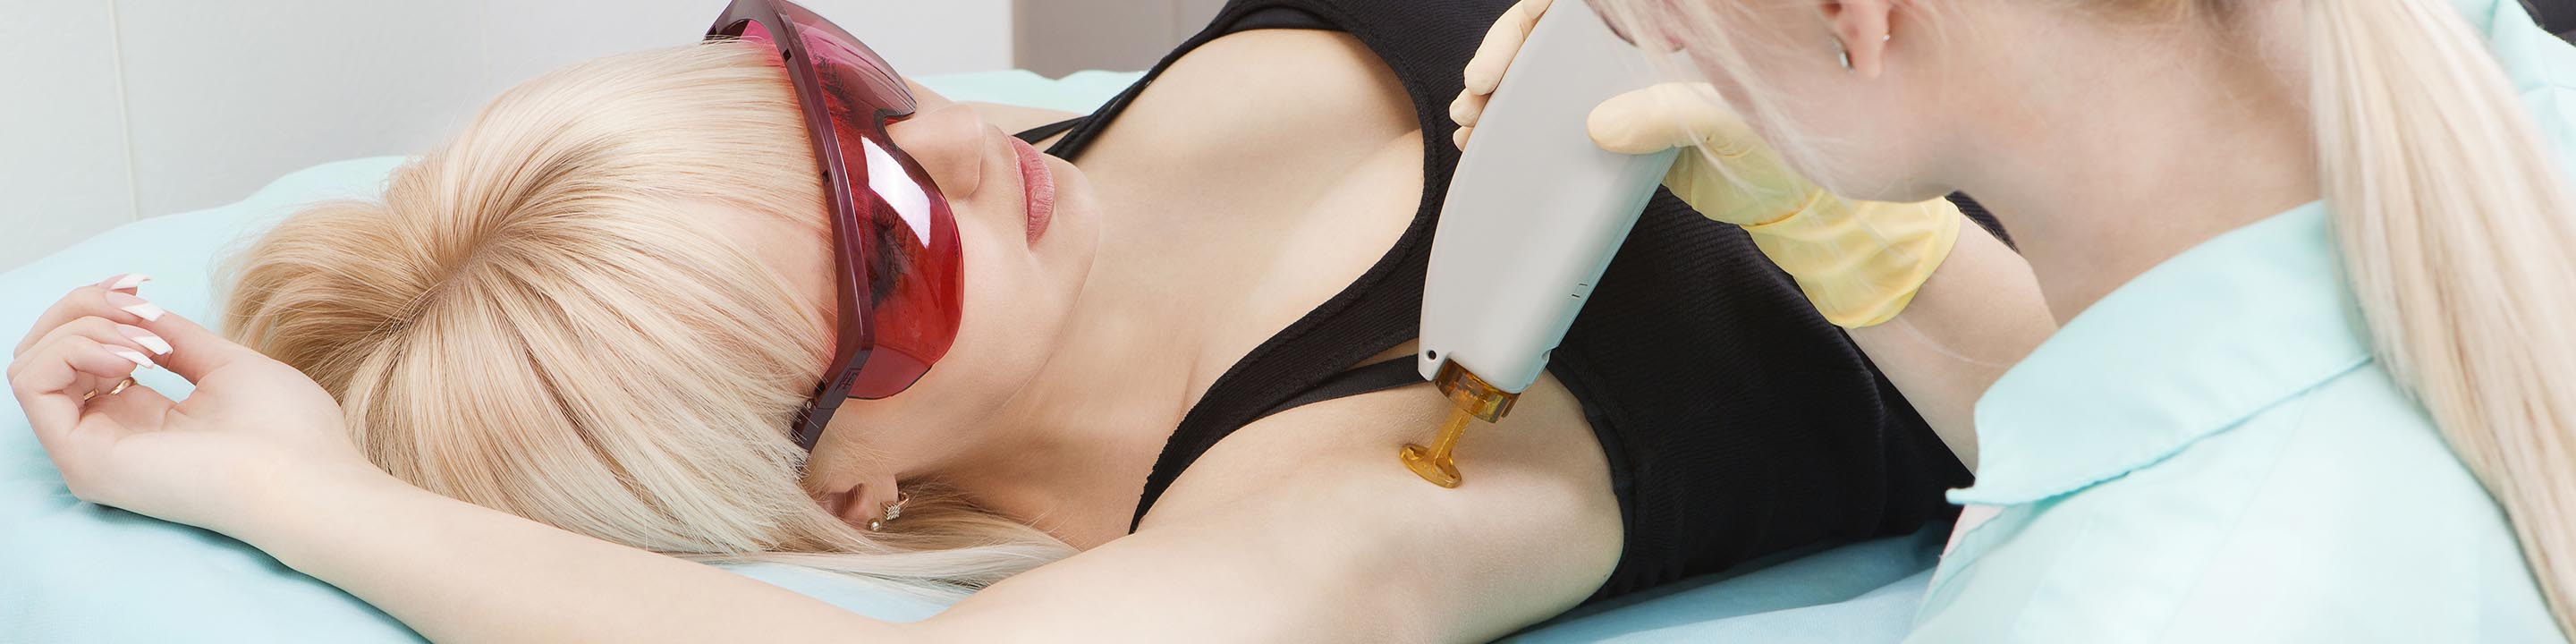 Woman having laser skin treatment on her arm.